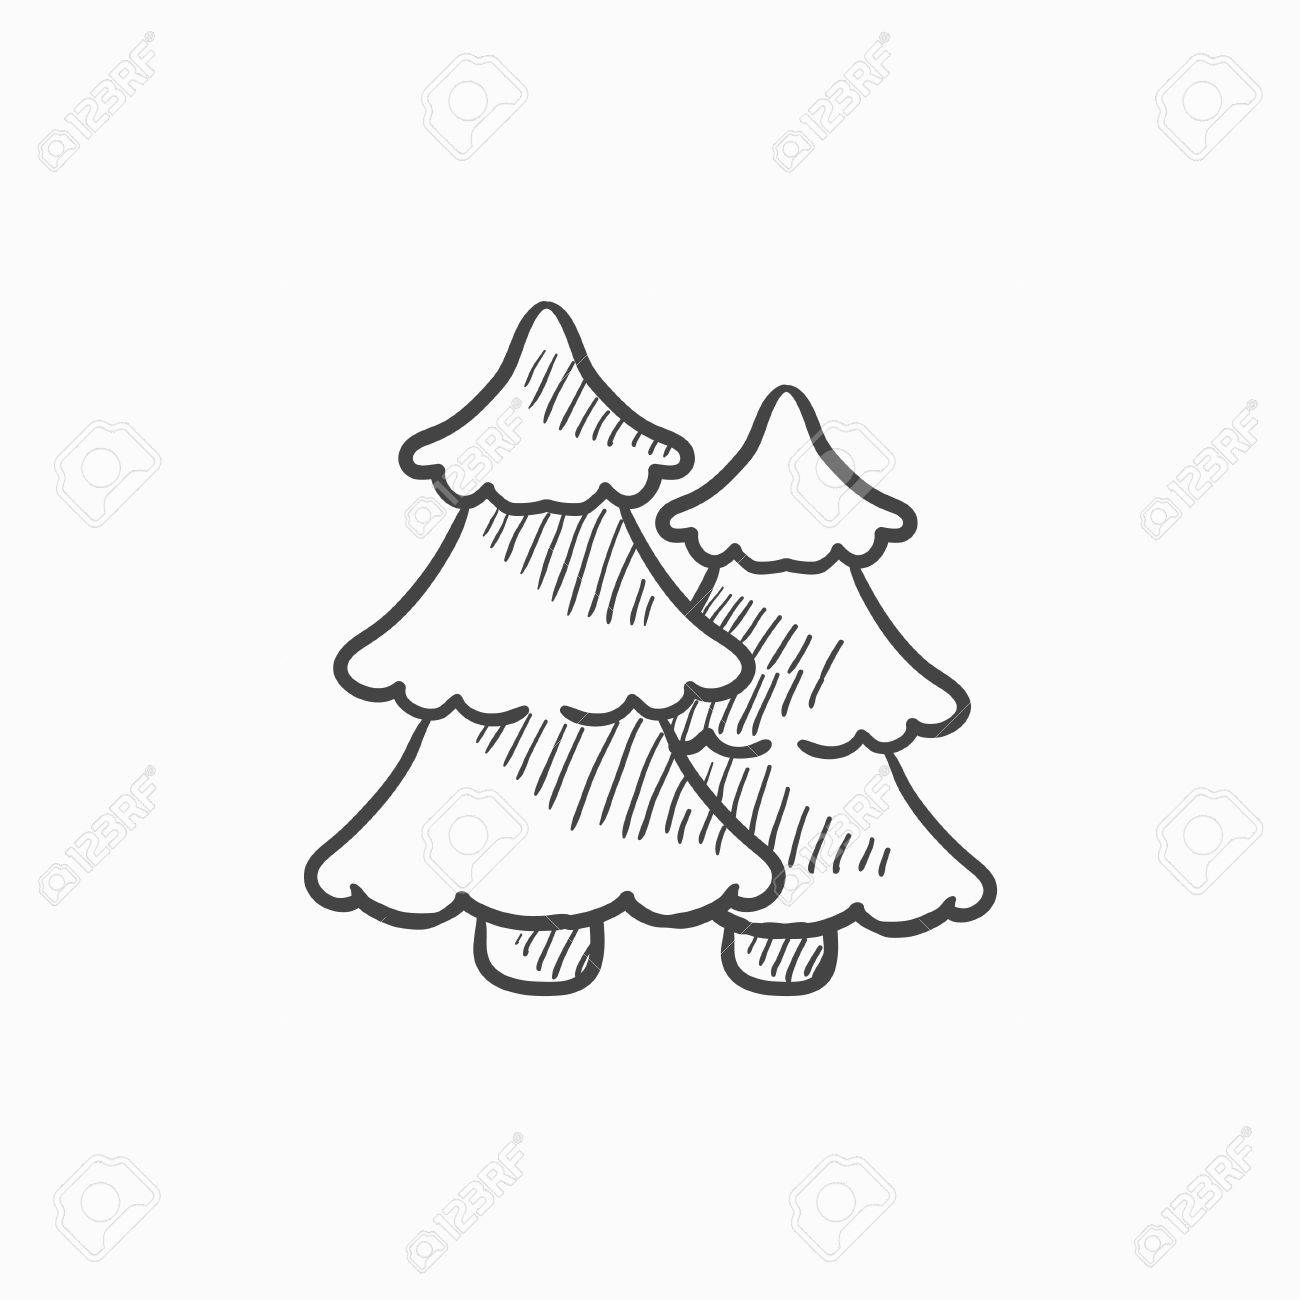 1300x1300 Pine Trees Vector Sketch Icon Isolated On Background. Hand Drawn